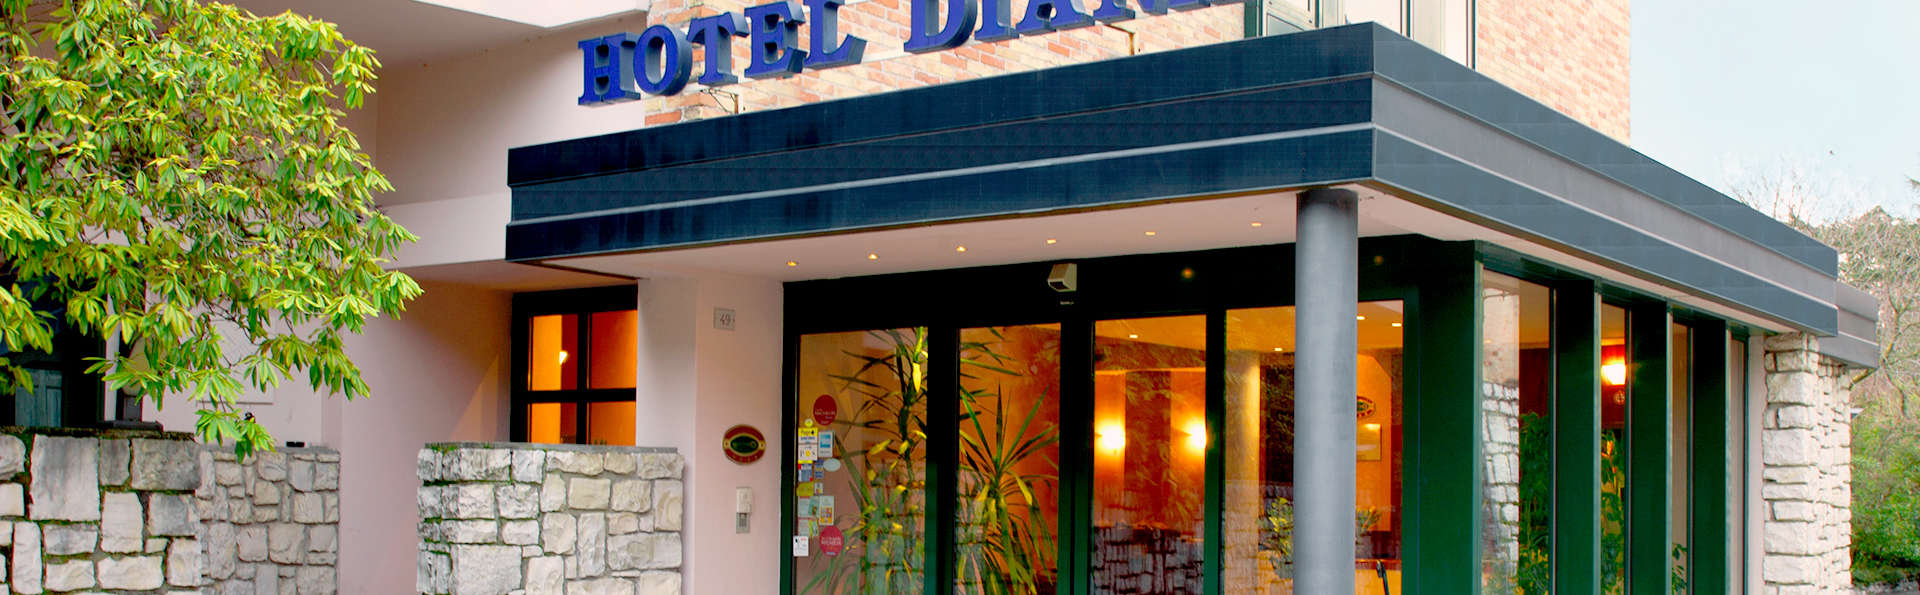 Hotel Diana - Edit_Front2.jpg